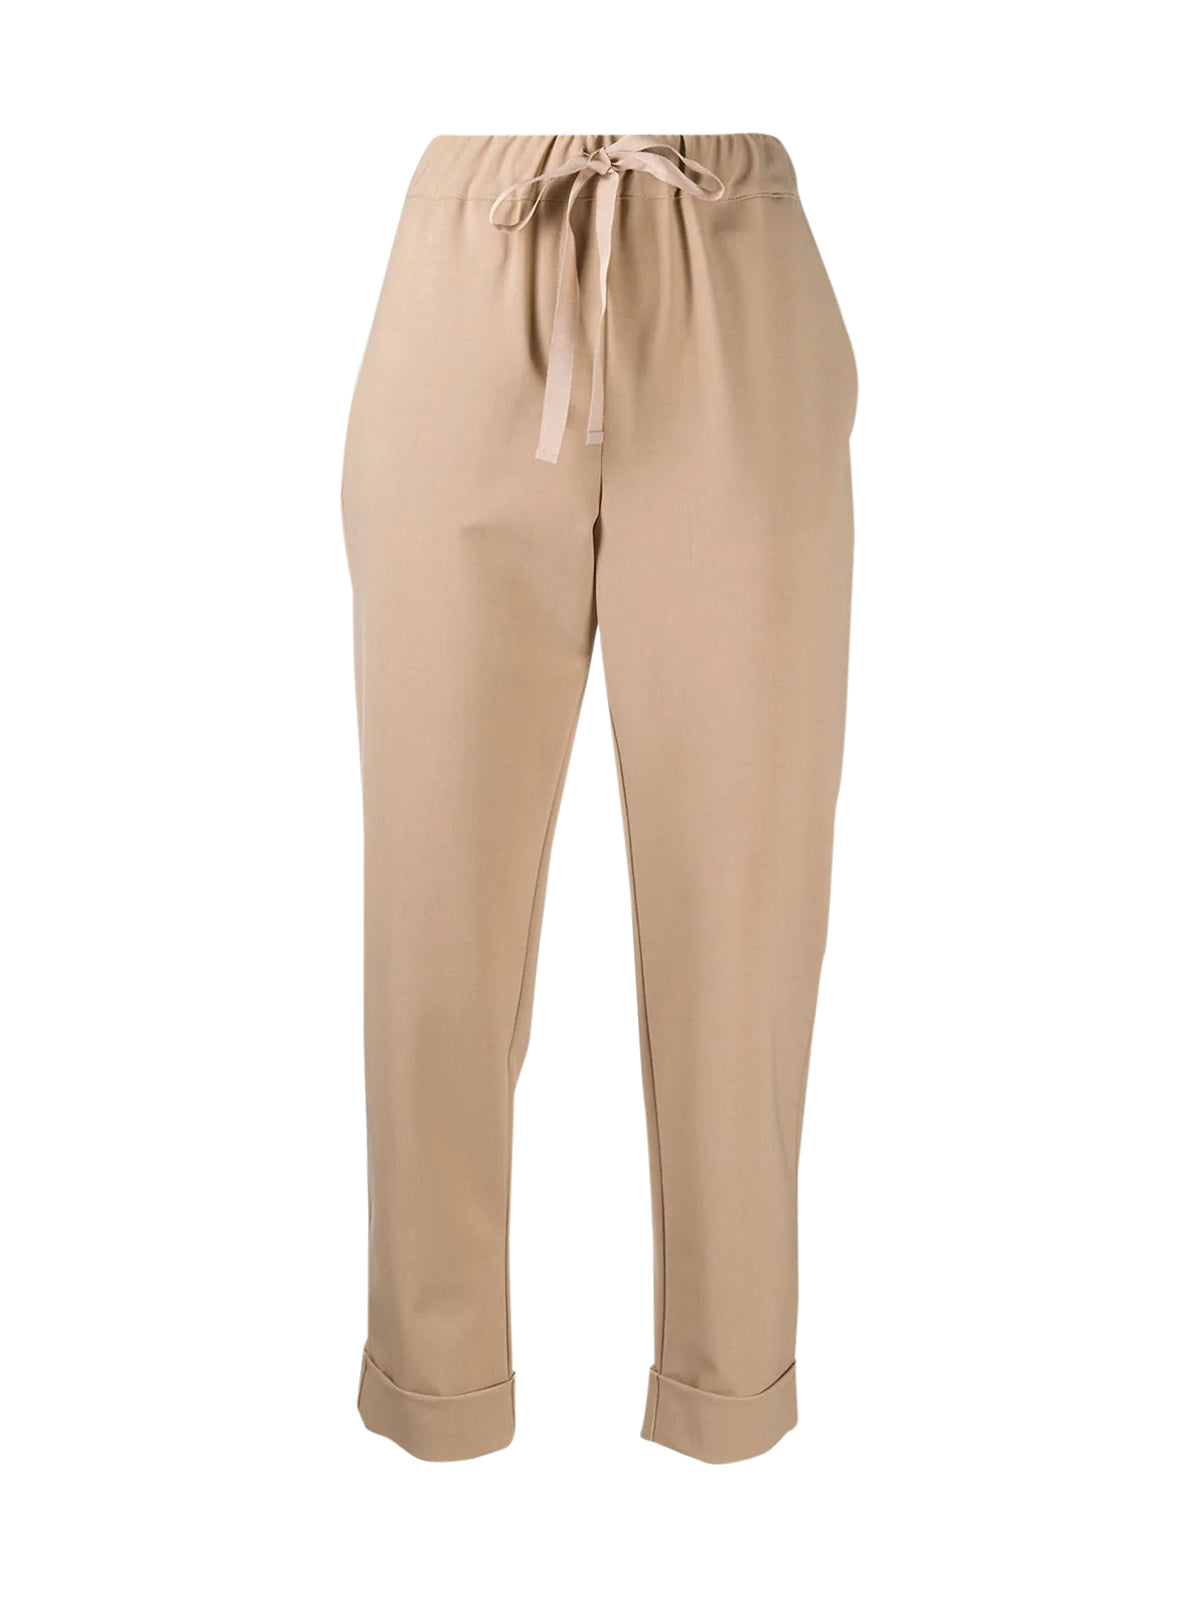 drawstring cropped leg trousers